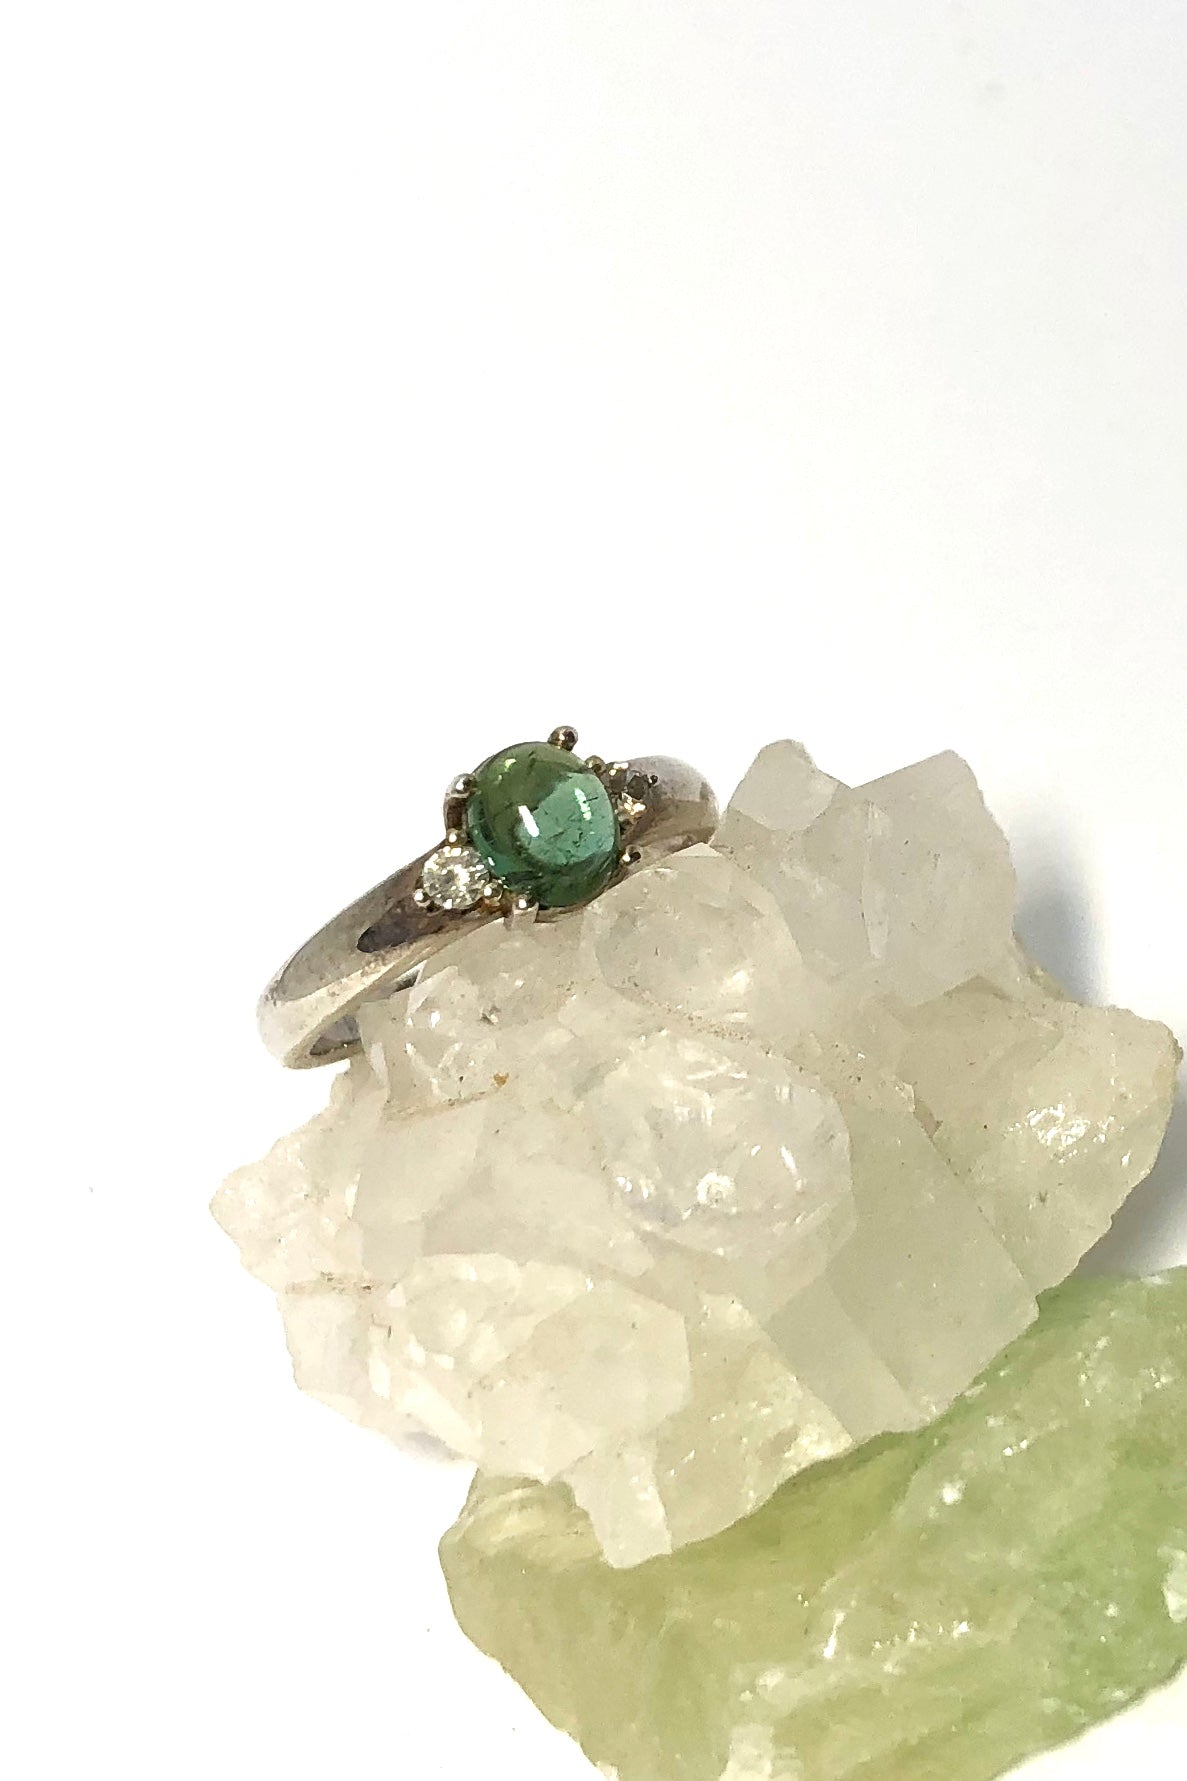 Ring Green Tourmaline with Topaz Side Stones featuring Oval cabochon green tourmaline gem stone, 6/52 small, sterling silver band and modern setting.